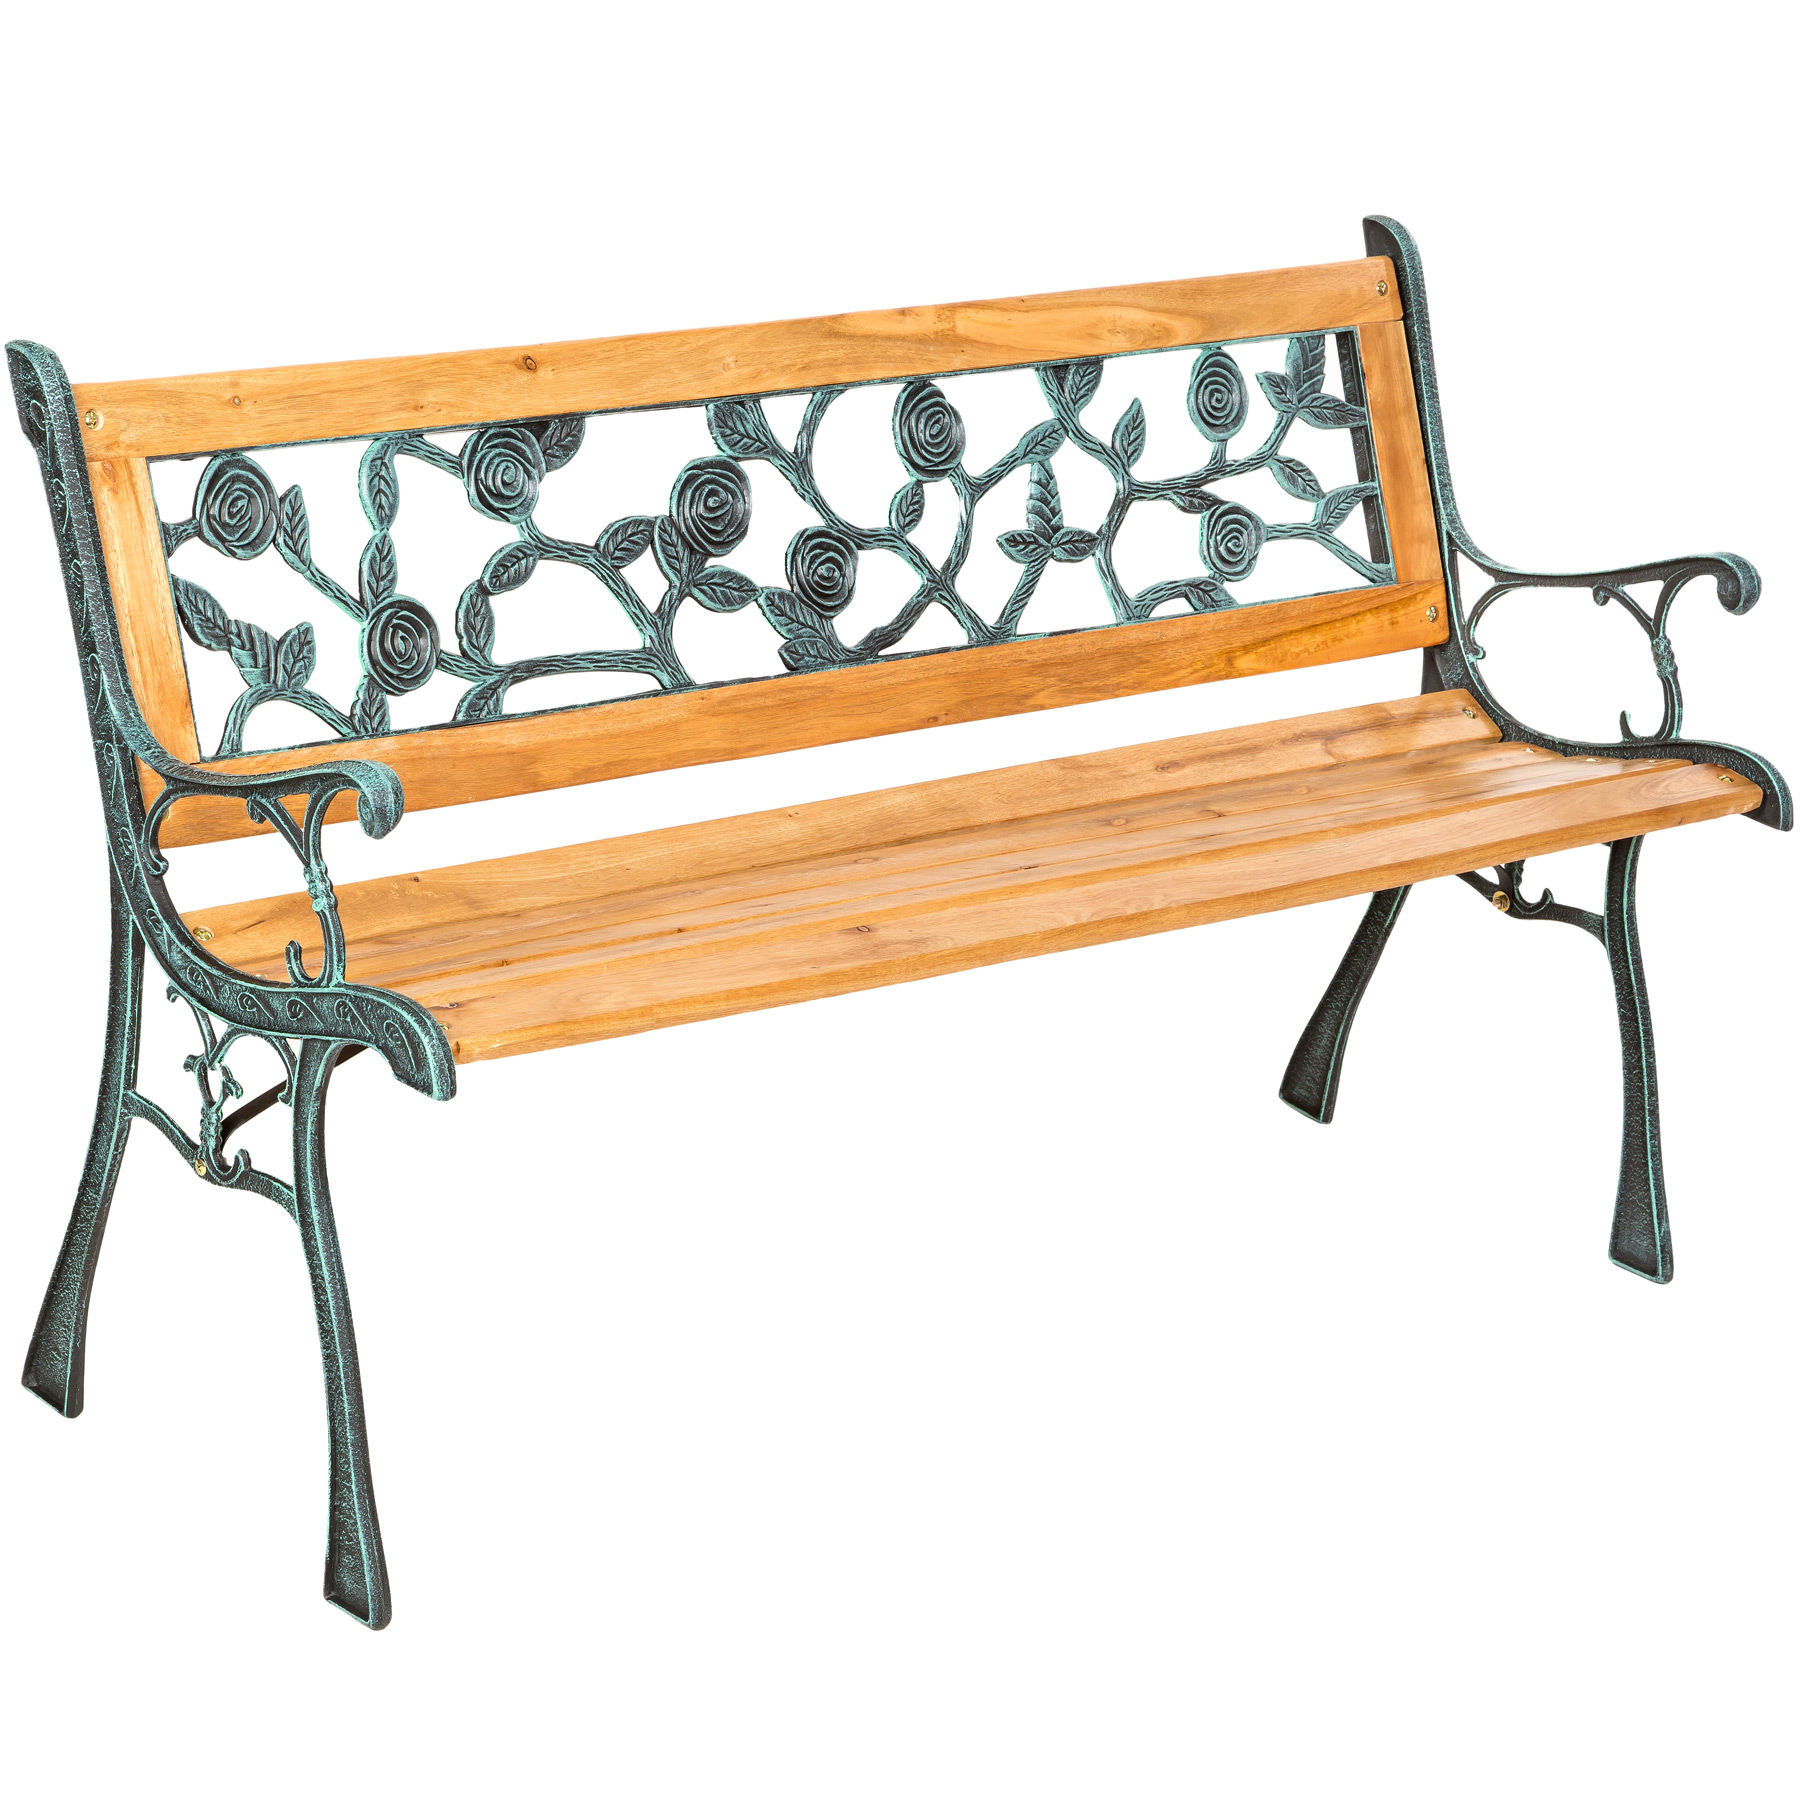 Wooden Garden Bench Slat 3 Seat With Cast Iron Legs Wood Furniture Classical New Ebay